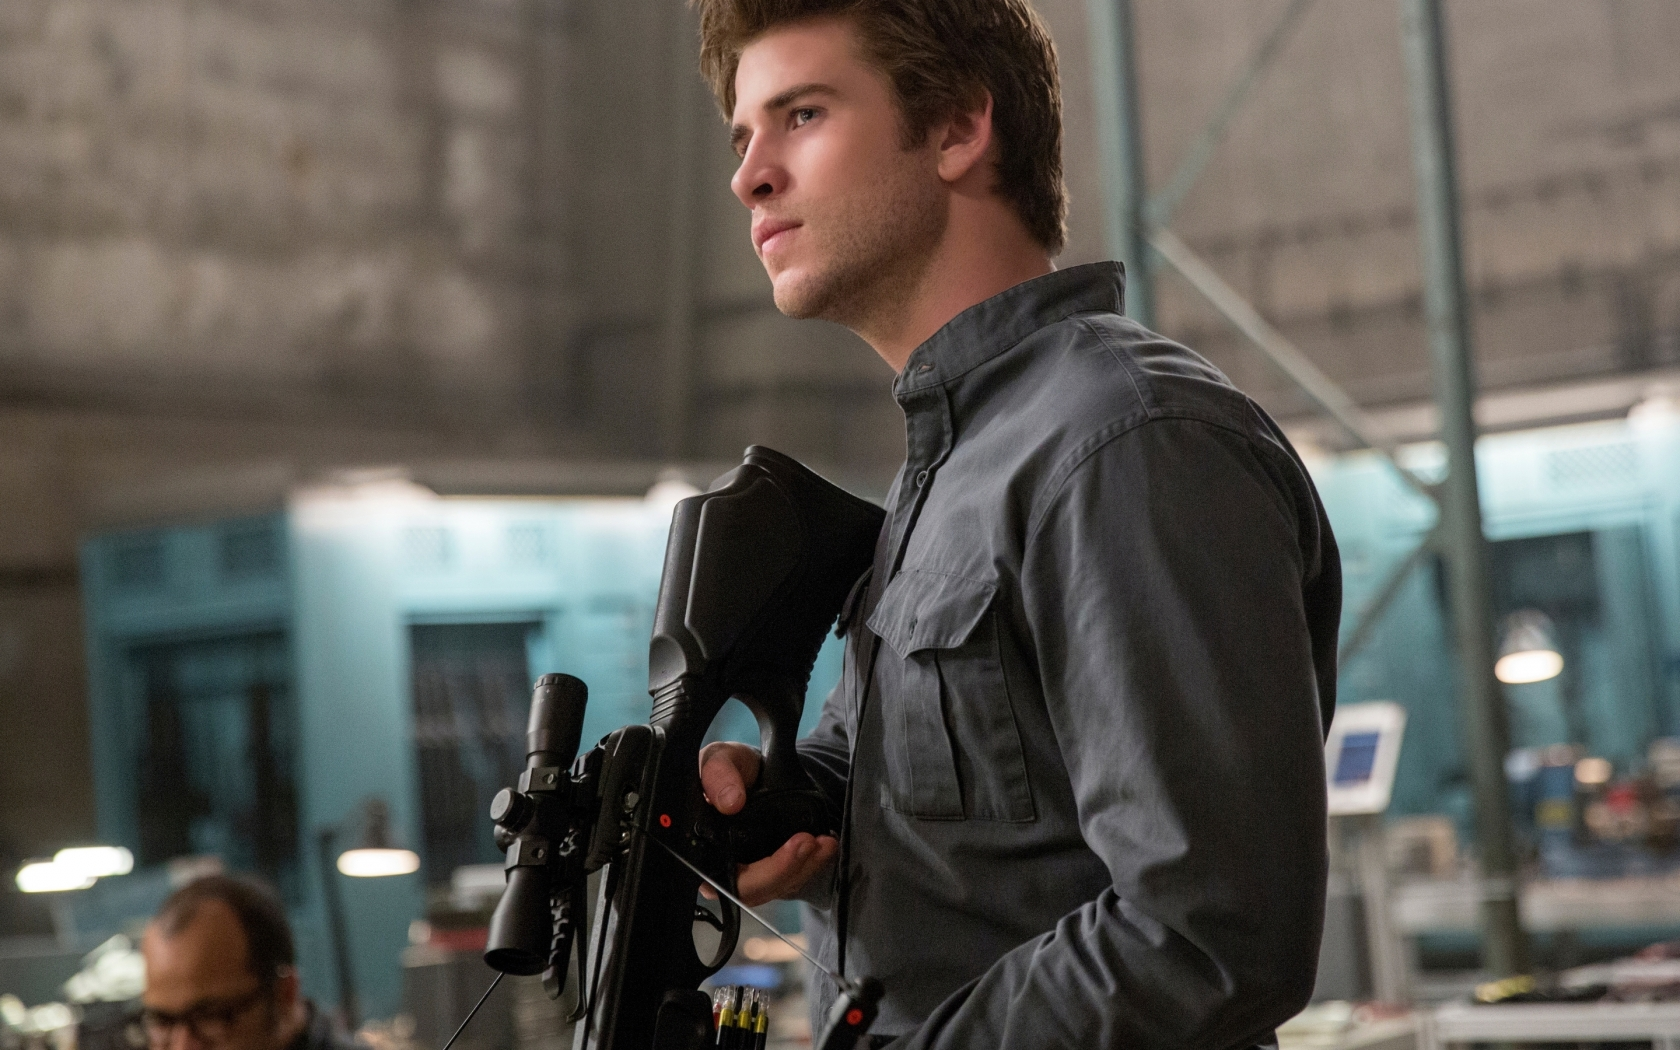 Liam Hemsworth in The Hunger Games for 1680 x 1050 widescreen resolution